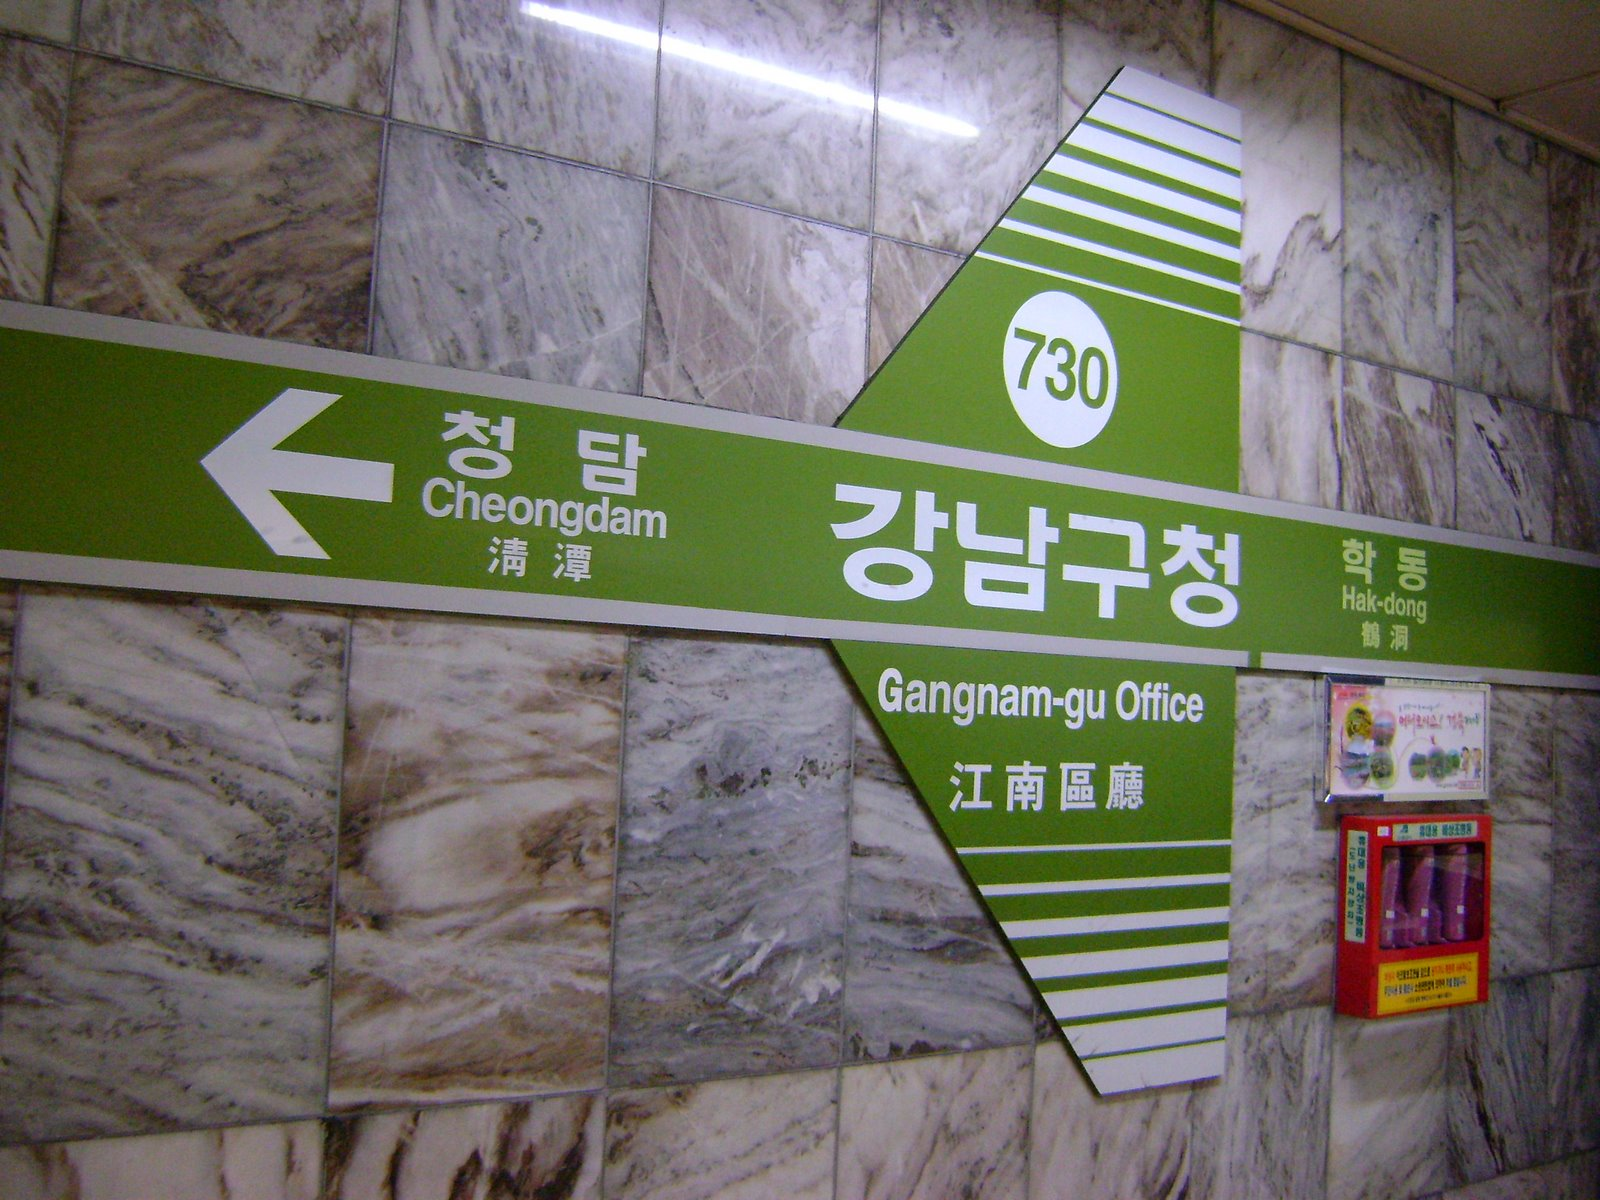 A sign on the wall of the Gangnam-gu Office subway station.